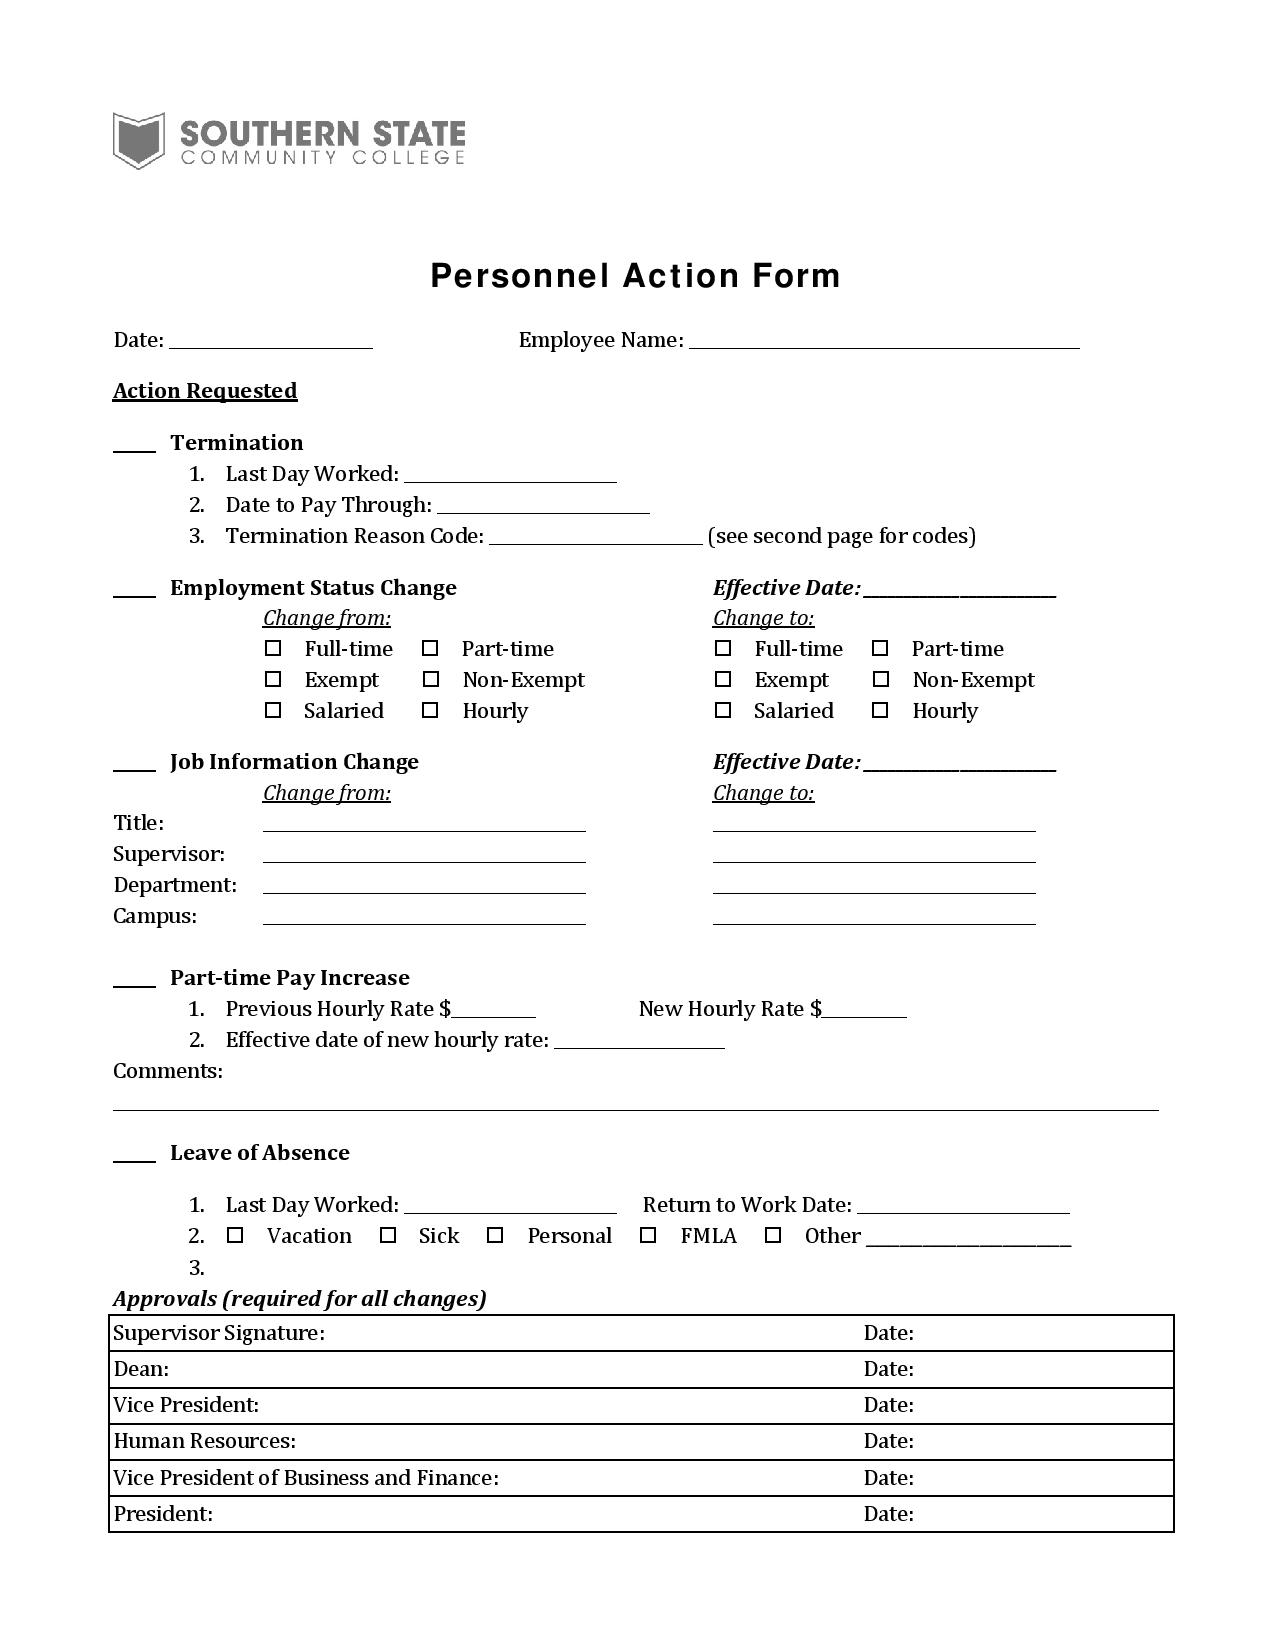 personnel action form2 page 0011